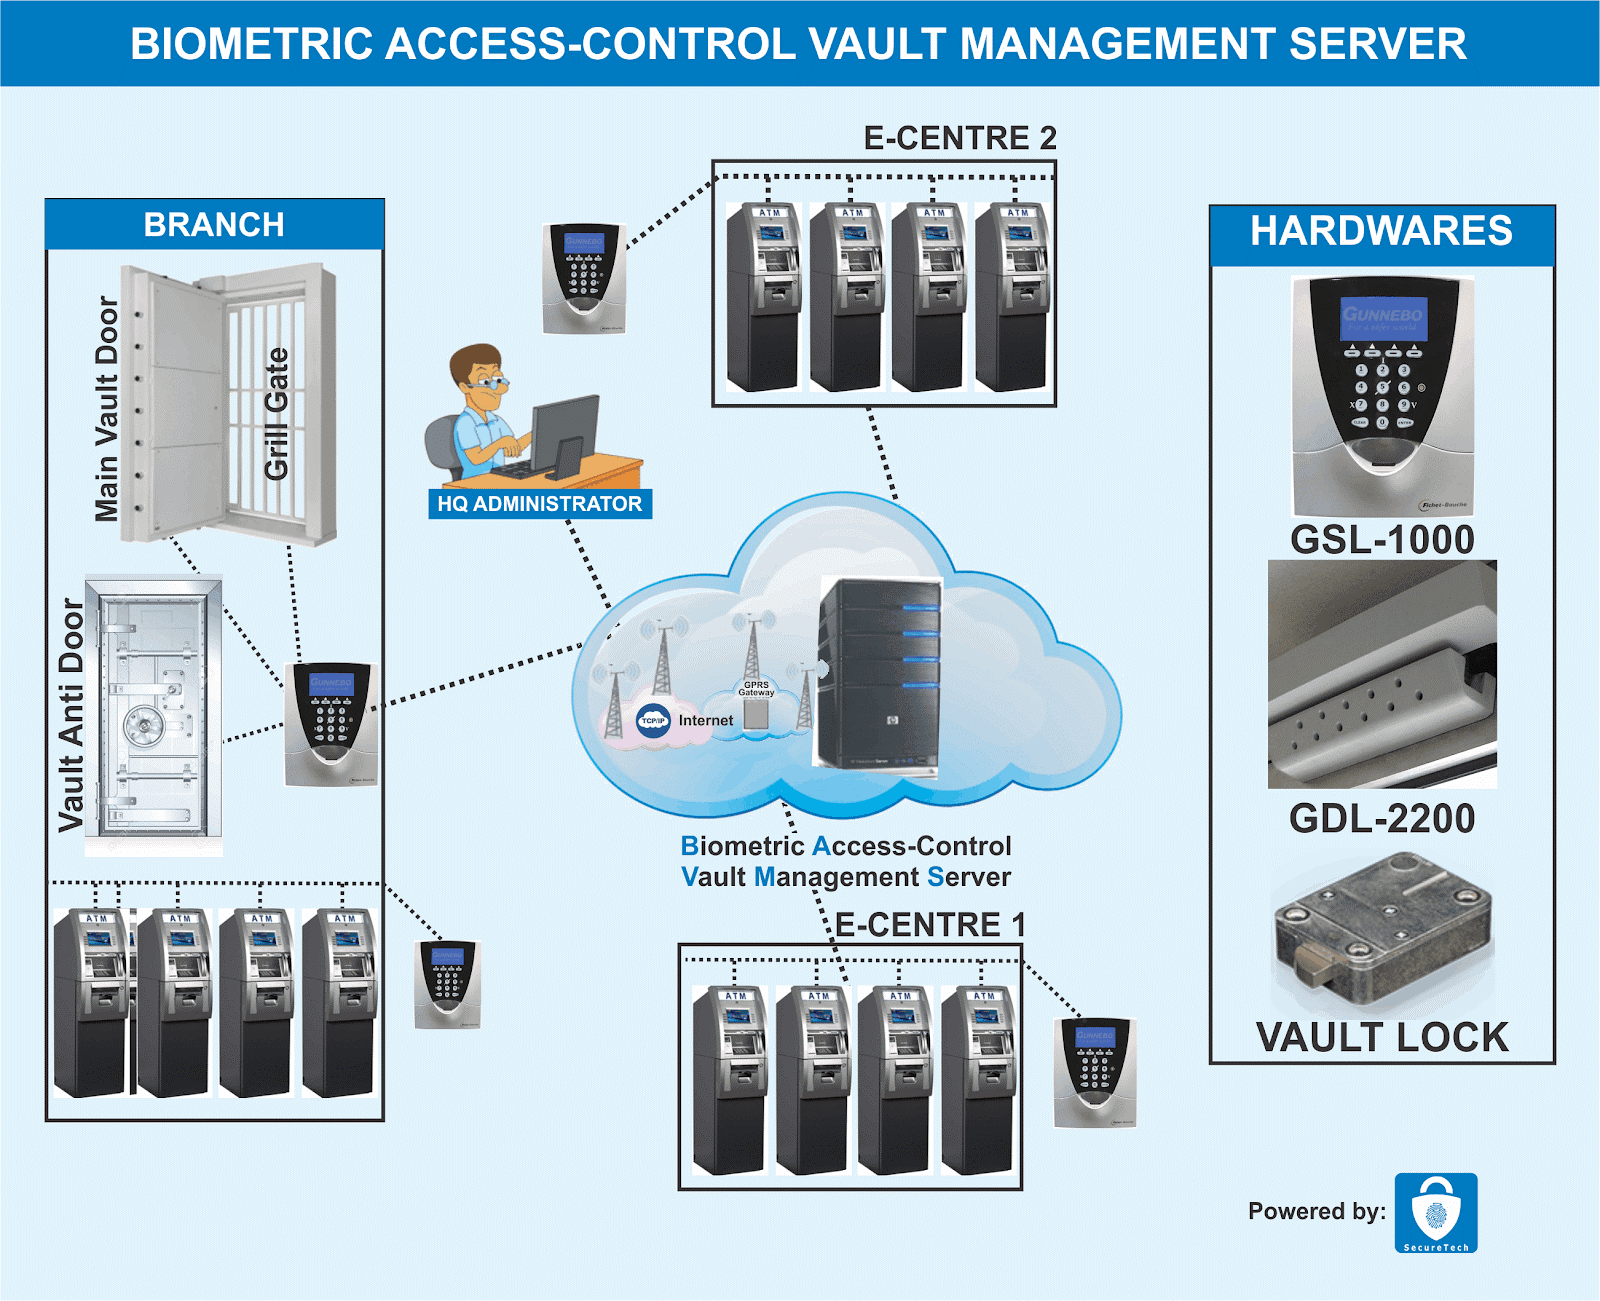 Biometric Access Vault Management System (BAVMS)